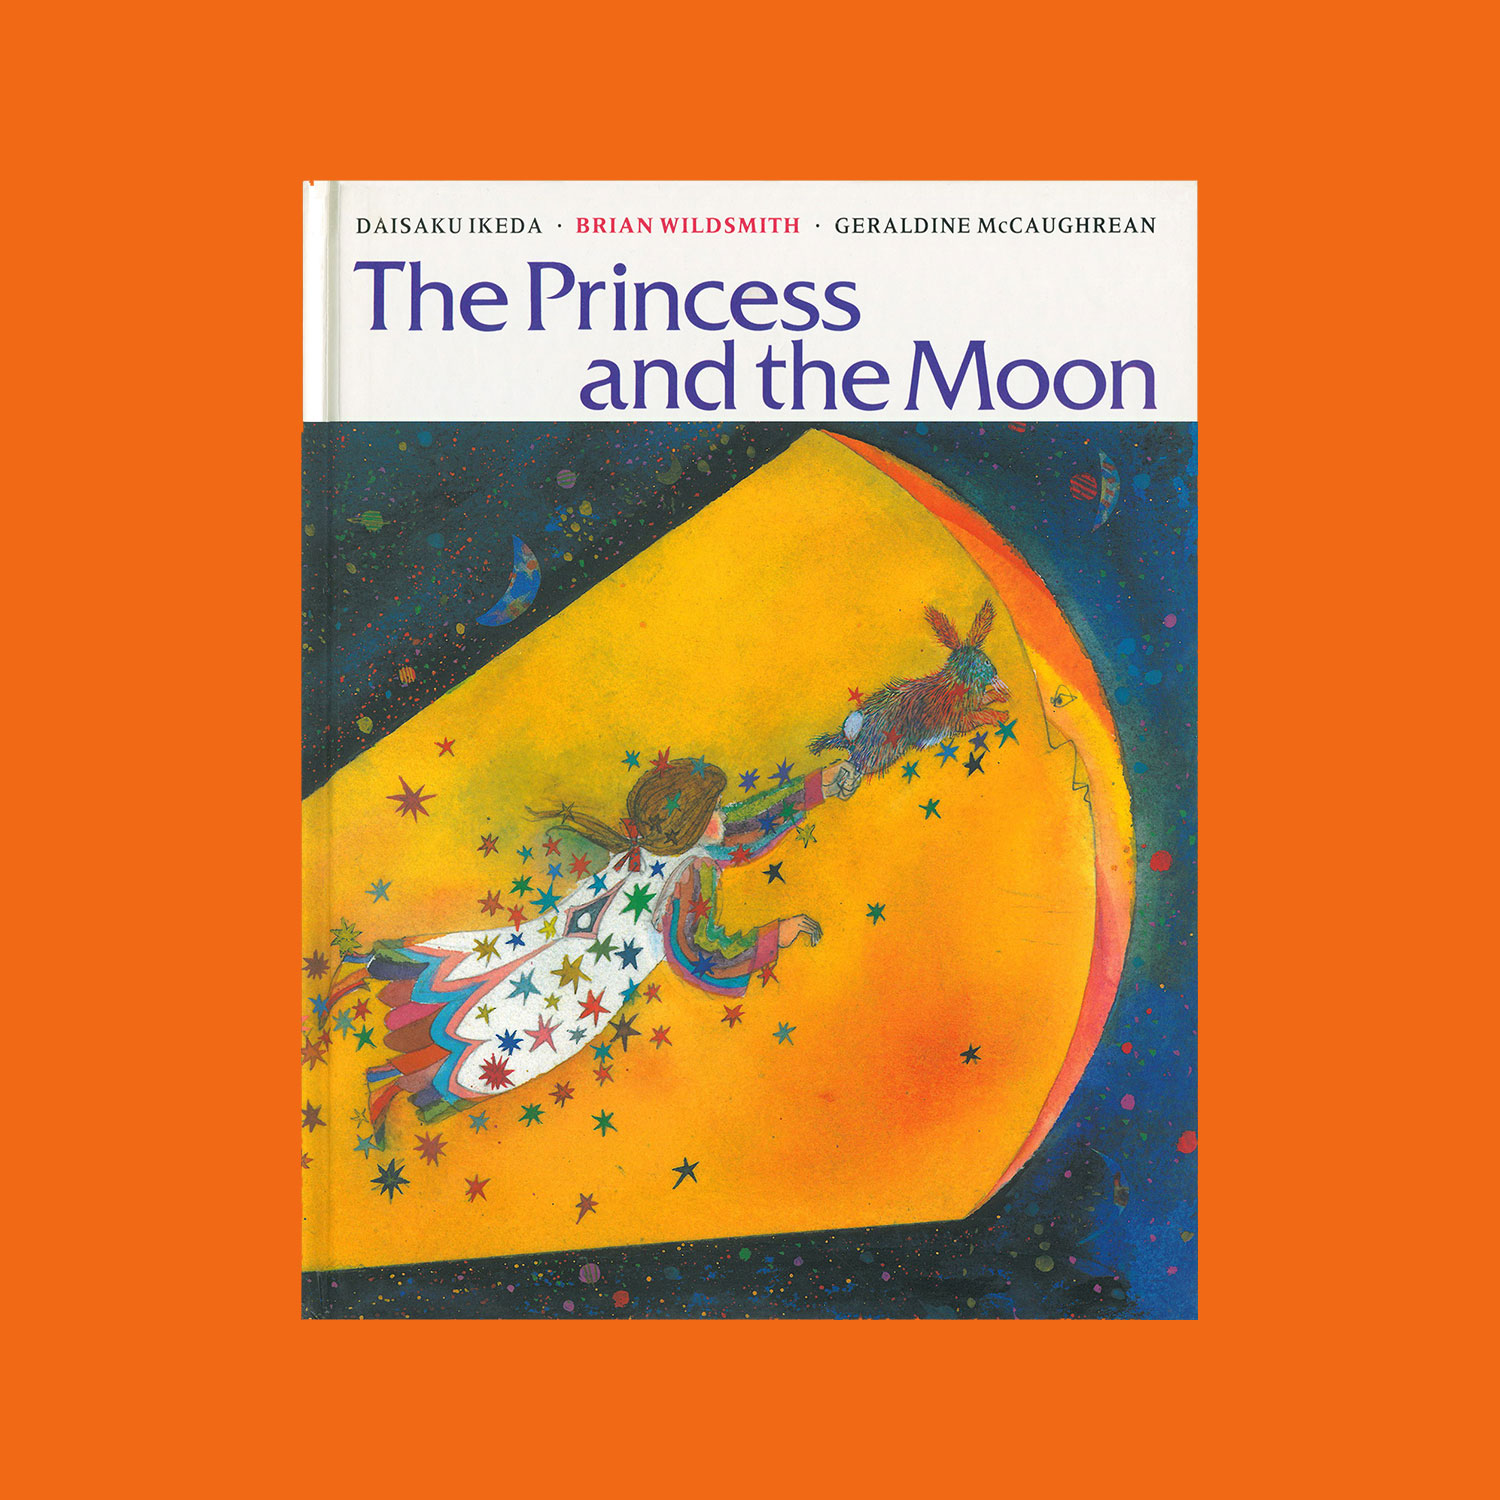 """THE PRINCESS AND THE MOON - Written by Daisaku Ikeda, translated into English by Geraldine McCaughrean, illustrated by Brian Wildsmith. 1991""""When the Great Rabbit carries the ill-tempered Sophie off to the moon she comes to understand that to be treated like a princess she must look for the best in other people and herself.""""""""We are constantly reminded that this peerless illustrator is also a painter of abstract""""Junior Bookshelf"""